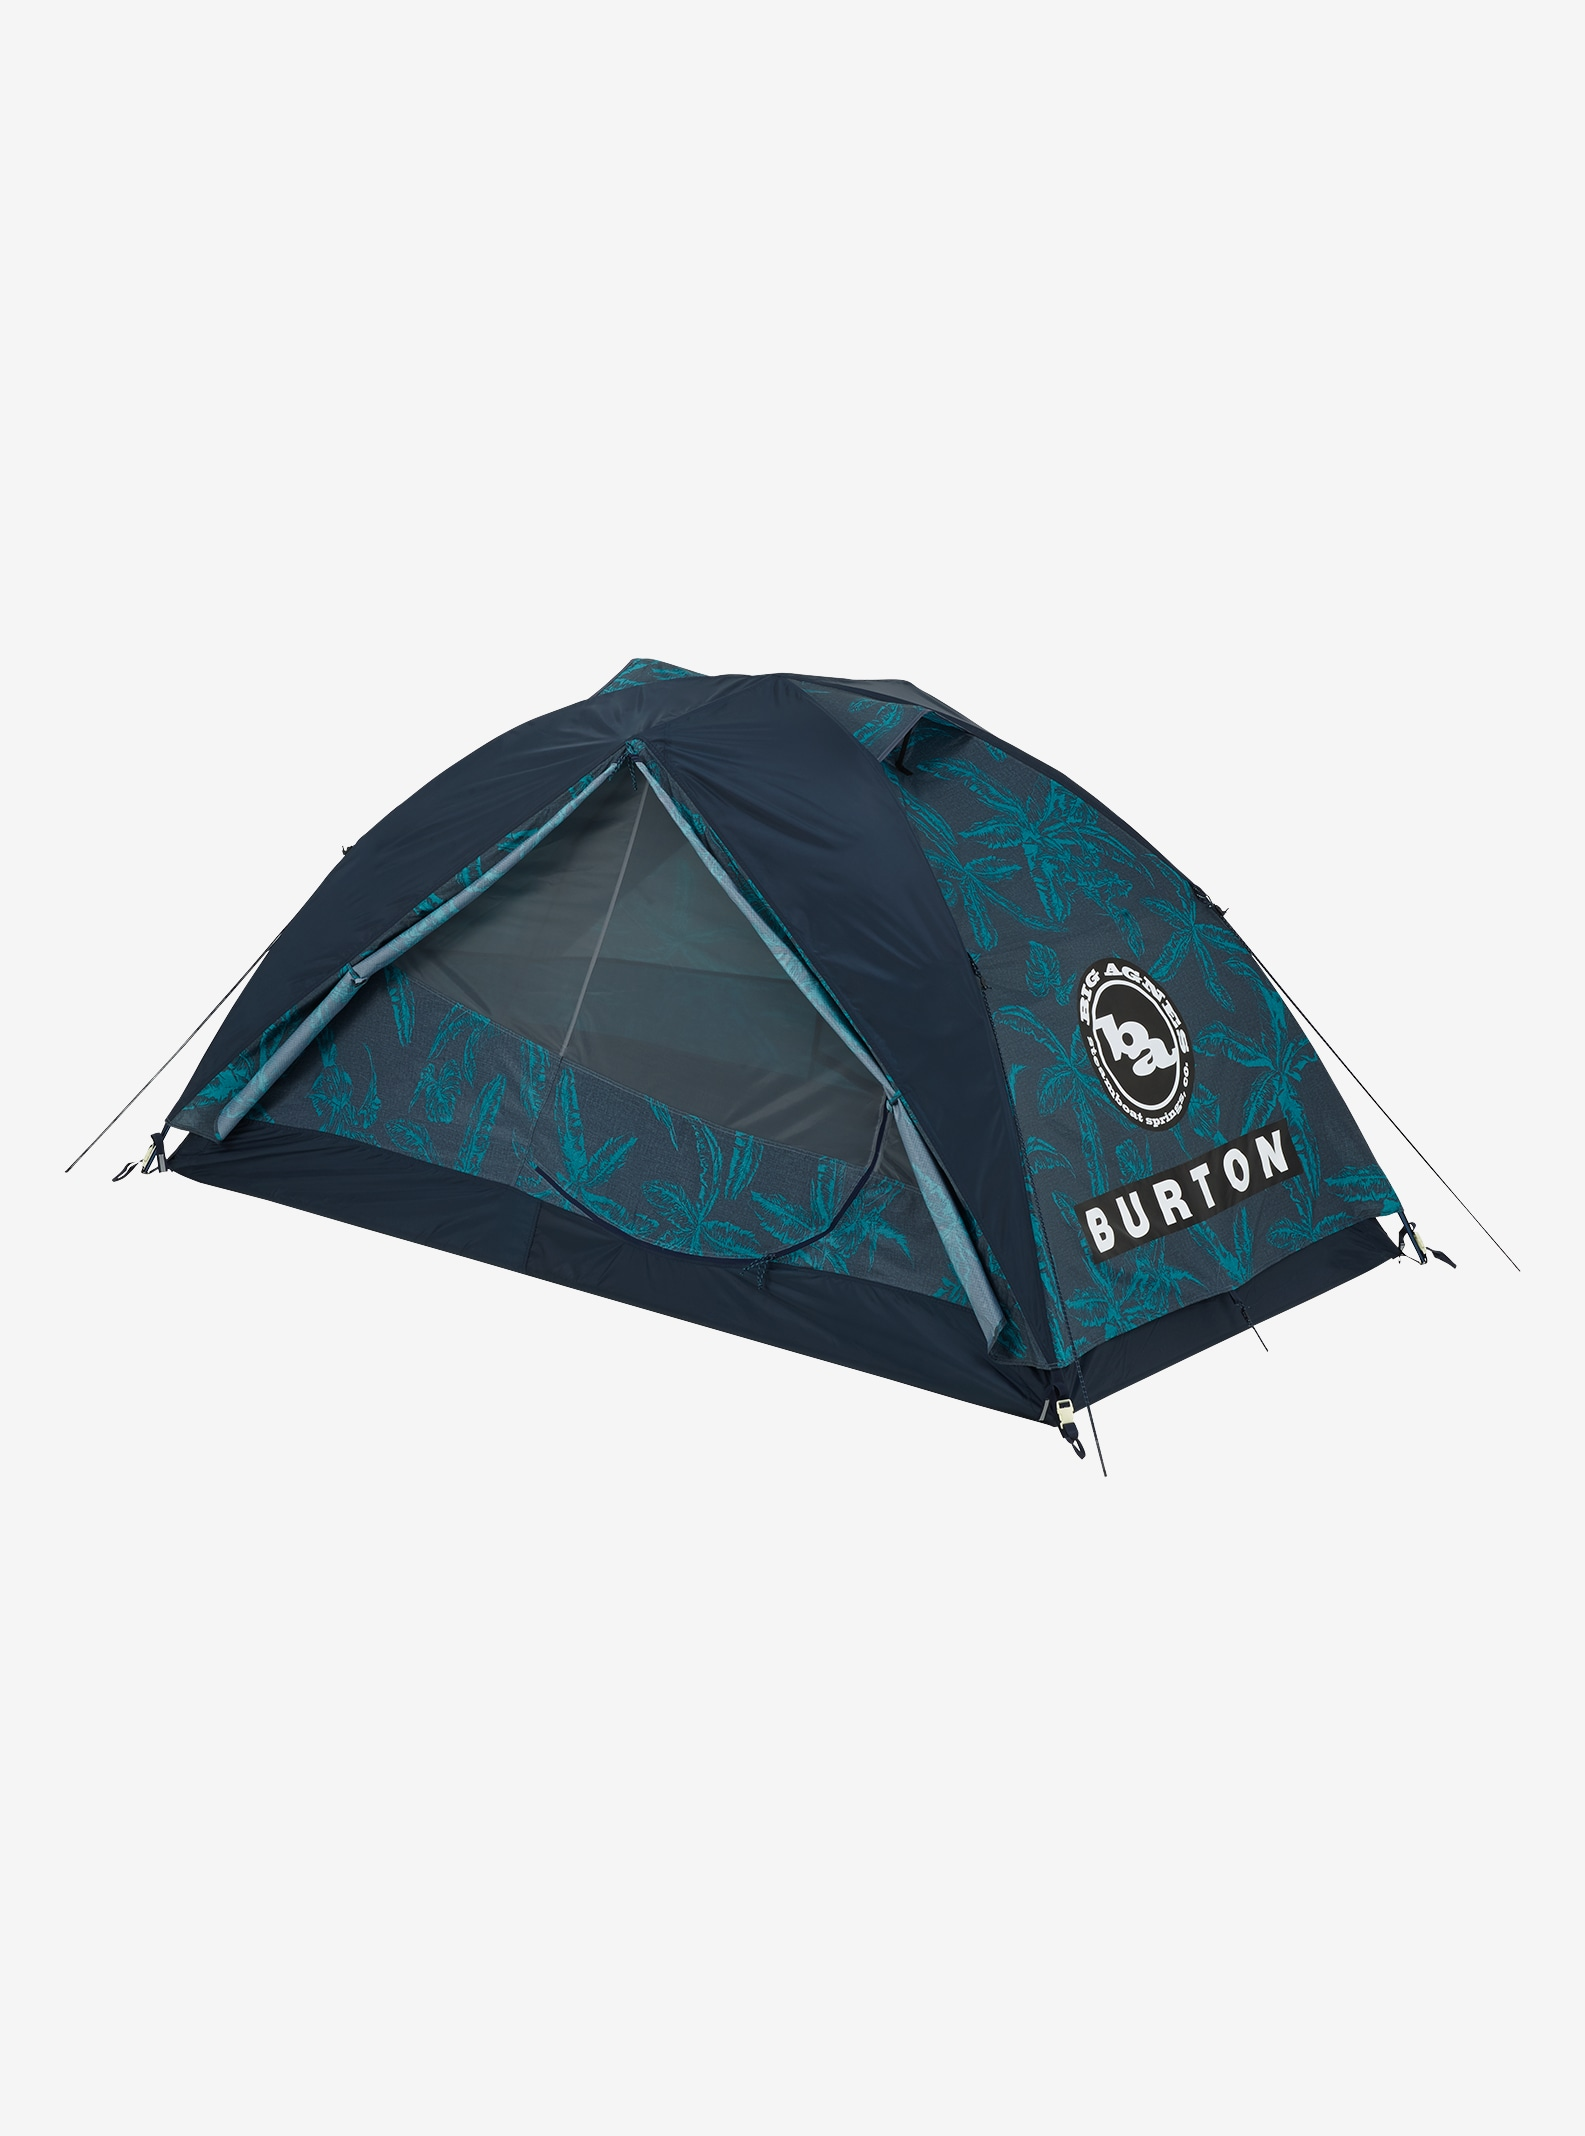 Big Agnes x Burton Blacktail 2 Tent shown in Tropical Print